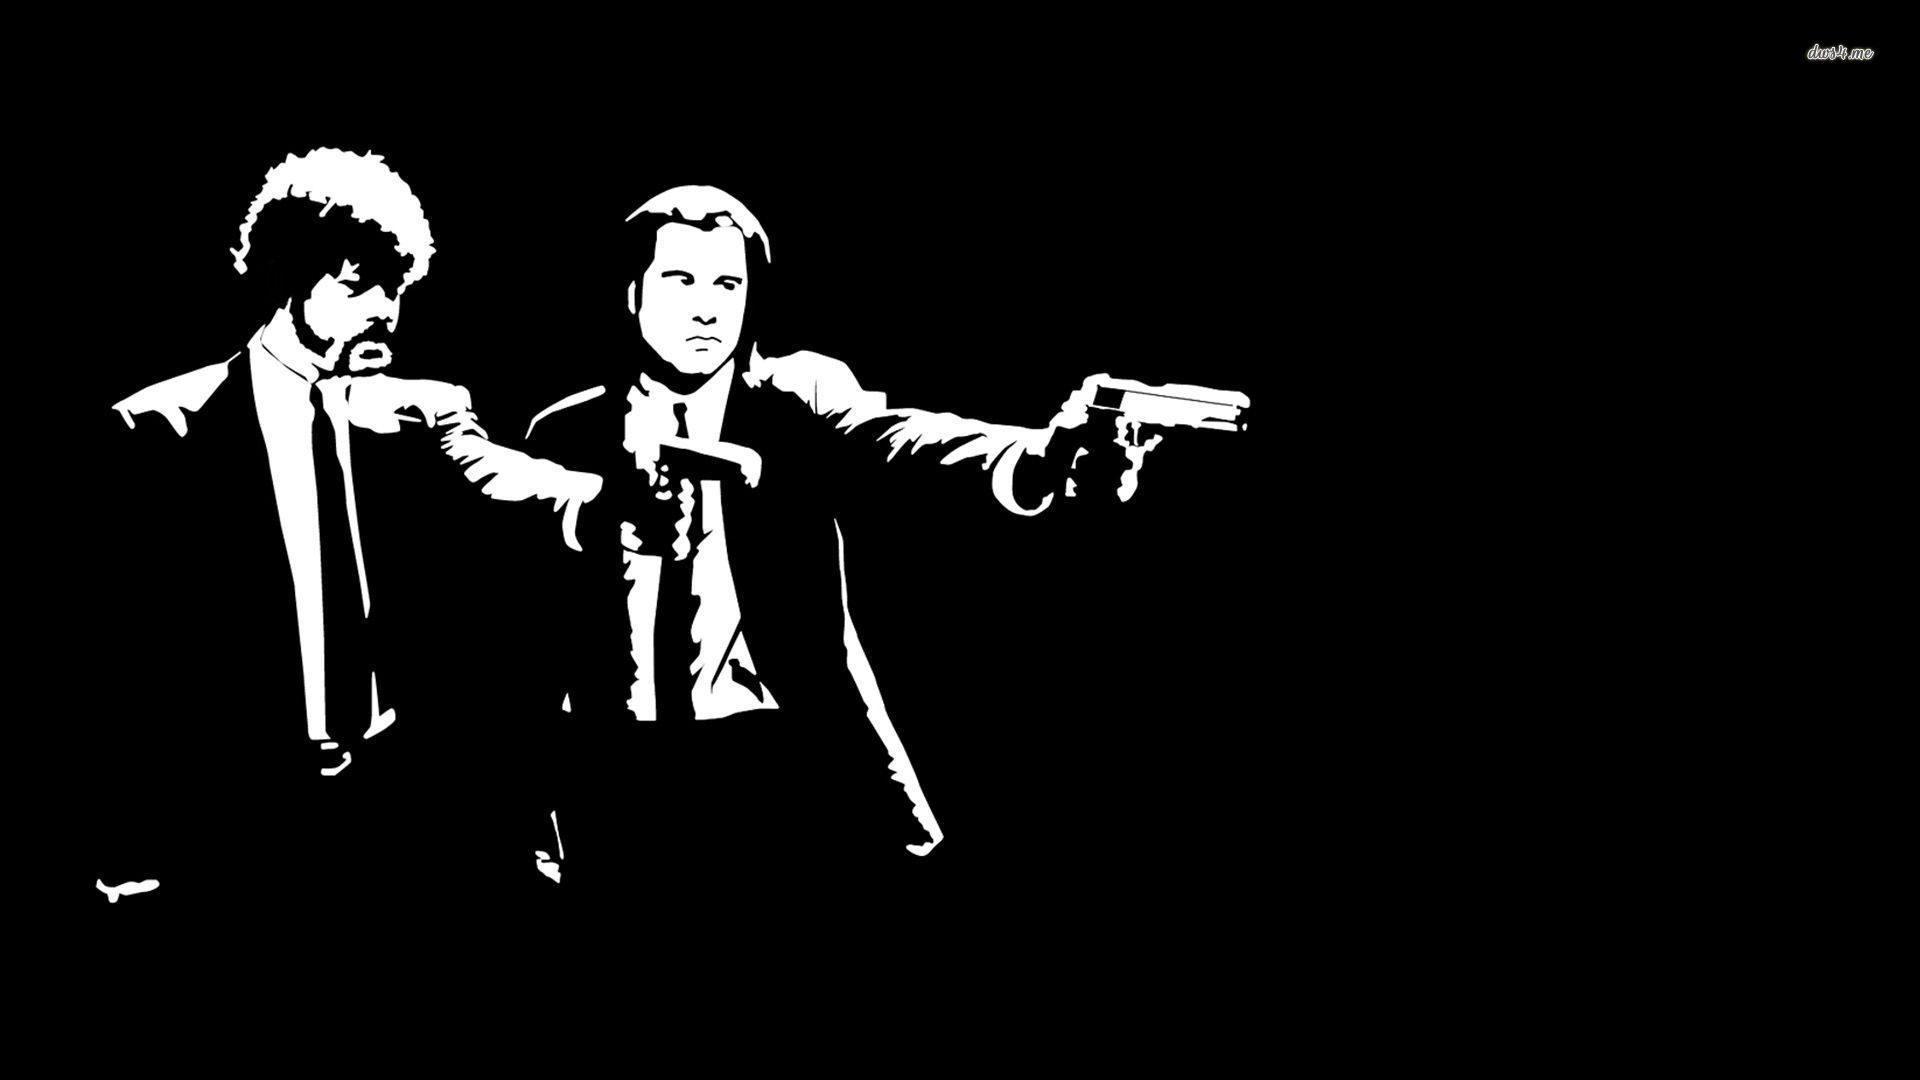 1920x1080 Pulp Fiction Wallpapers (68 Wallpapers)